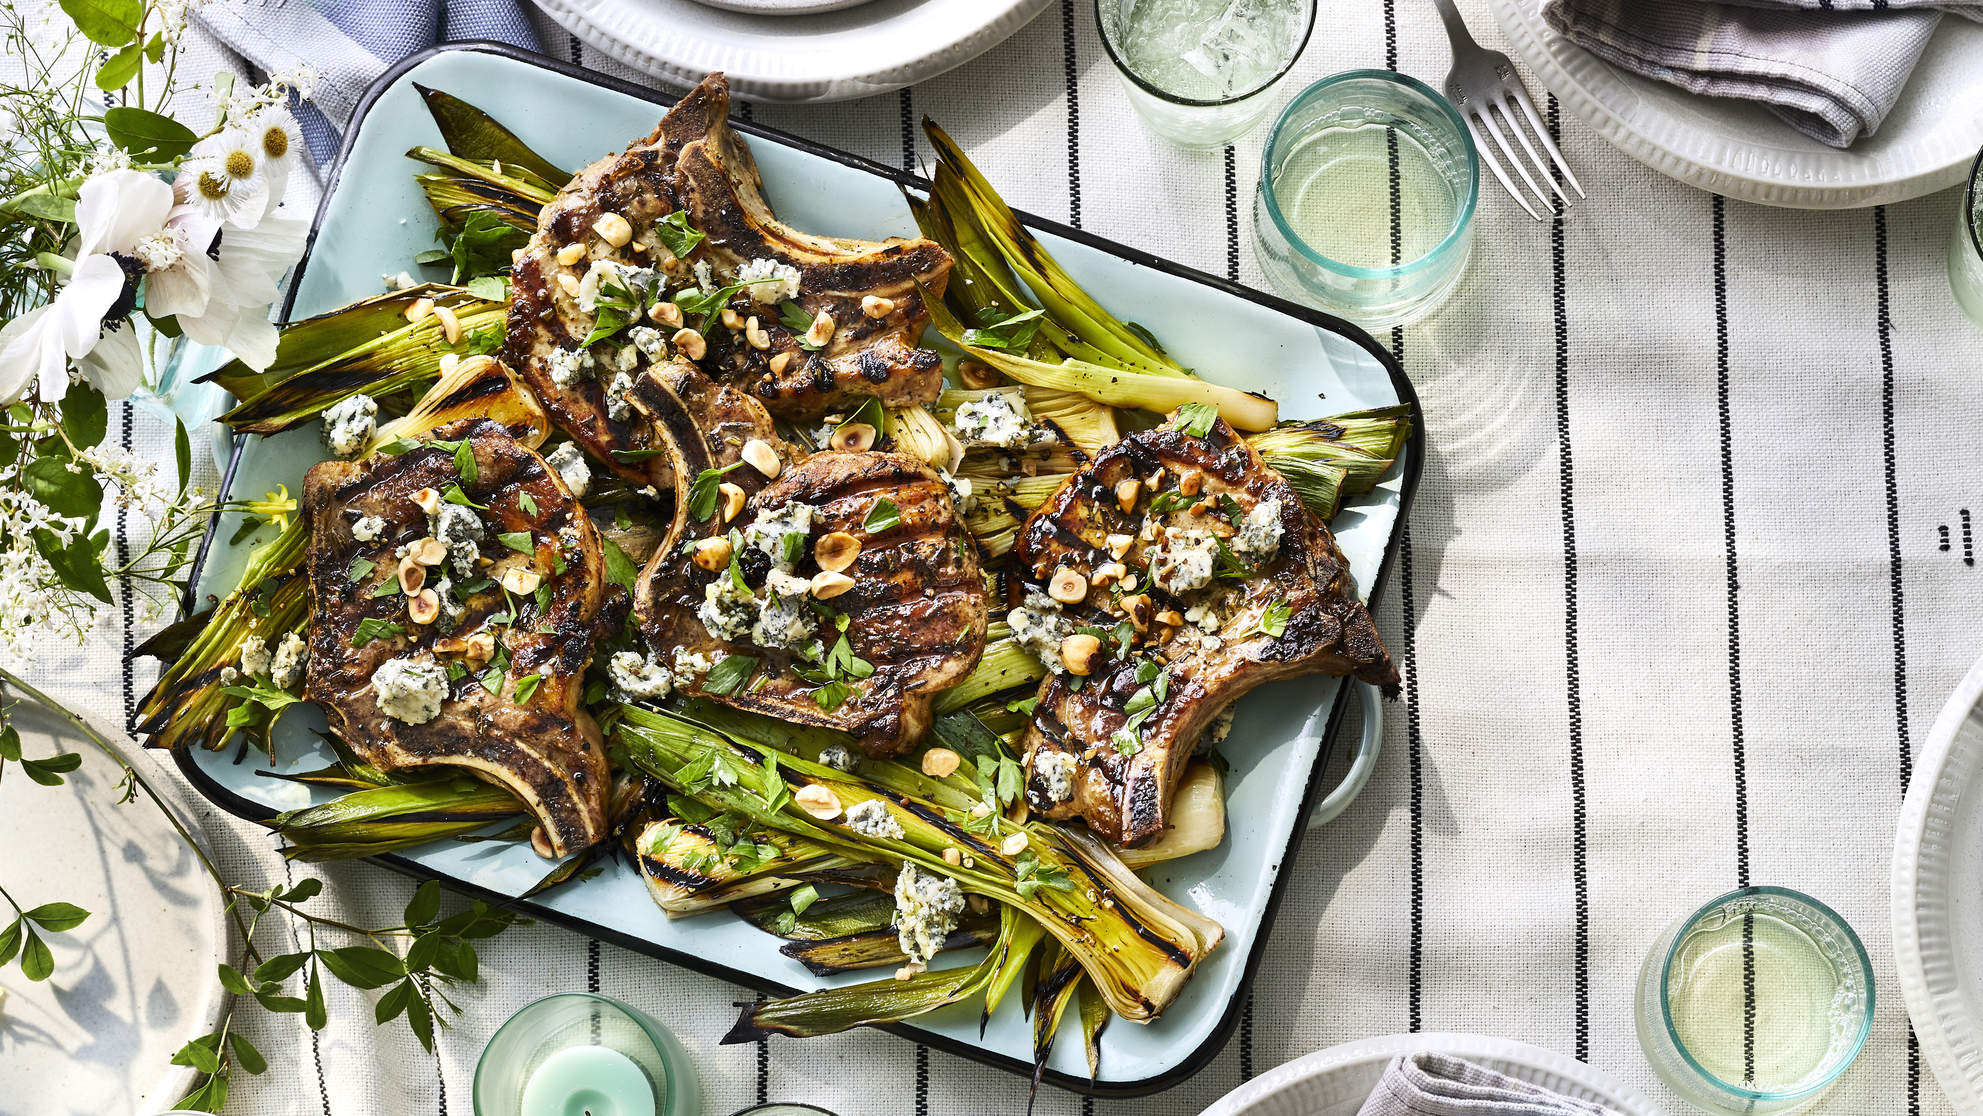 ROSEMARY PORK CHOPS WITH GRILLED LEEKS health summer recipe